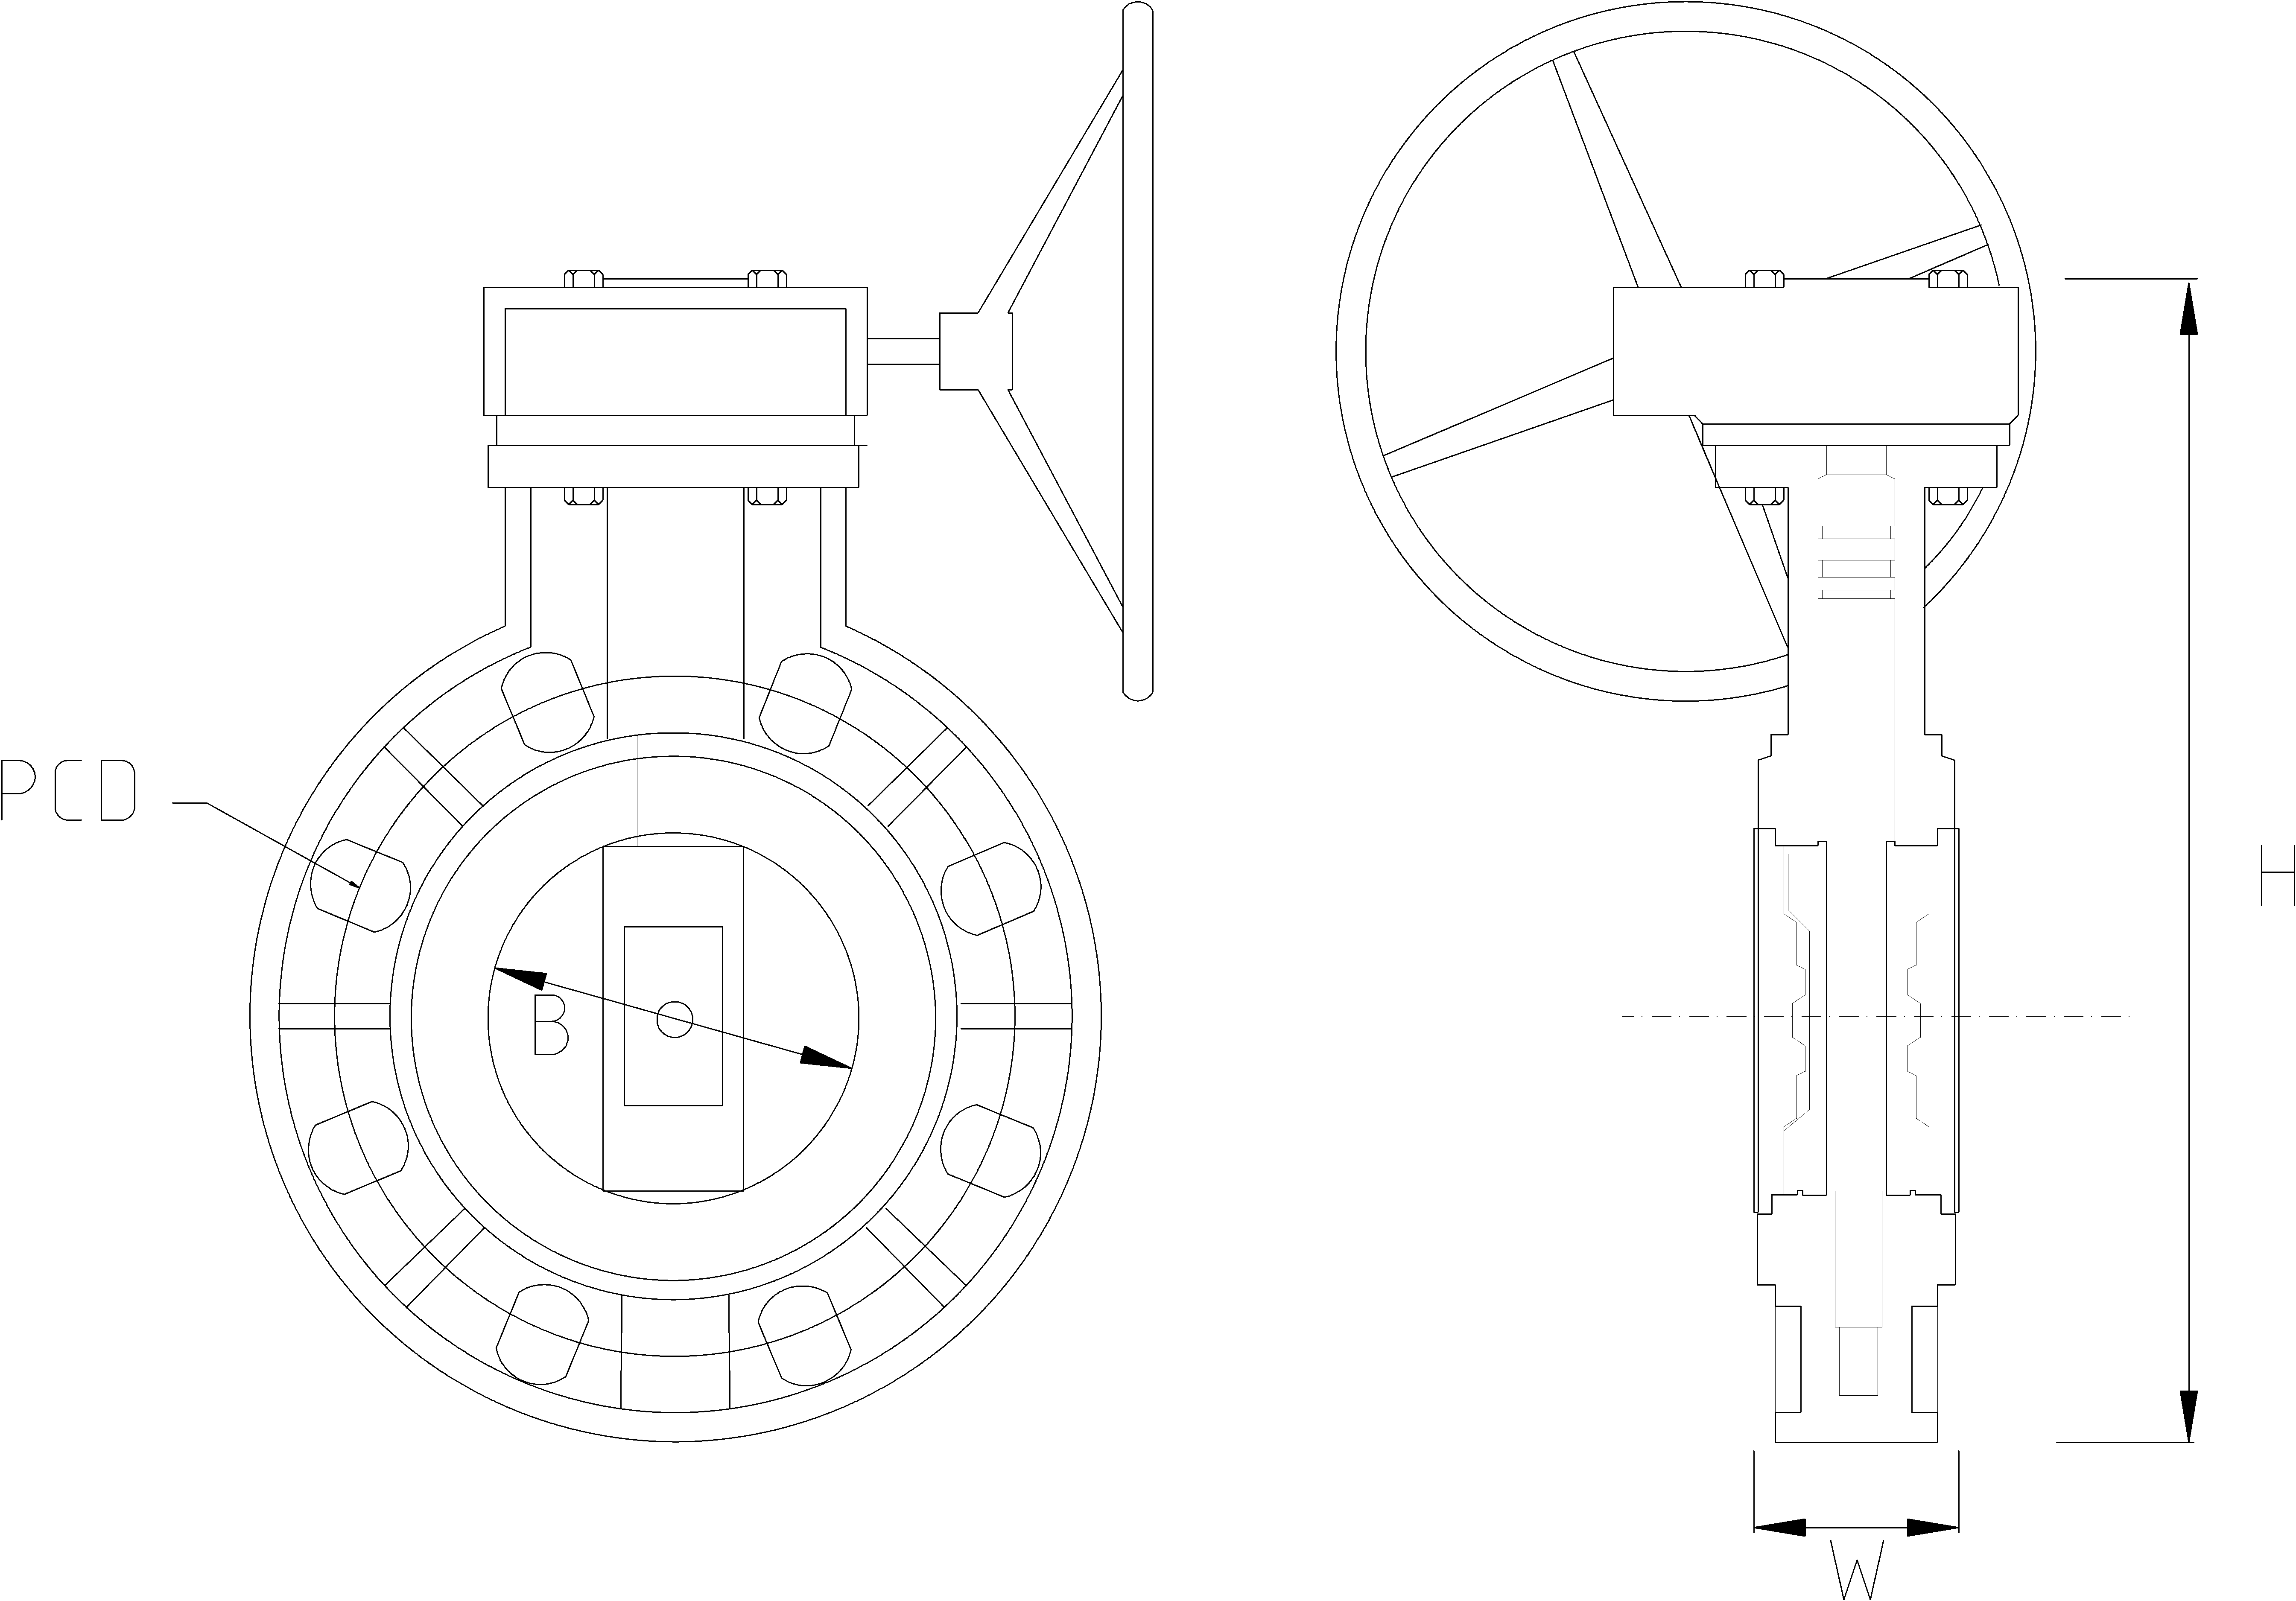 250mm Inch Gear Operated Butterfly Valve Dimensions Drawing